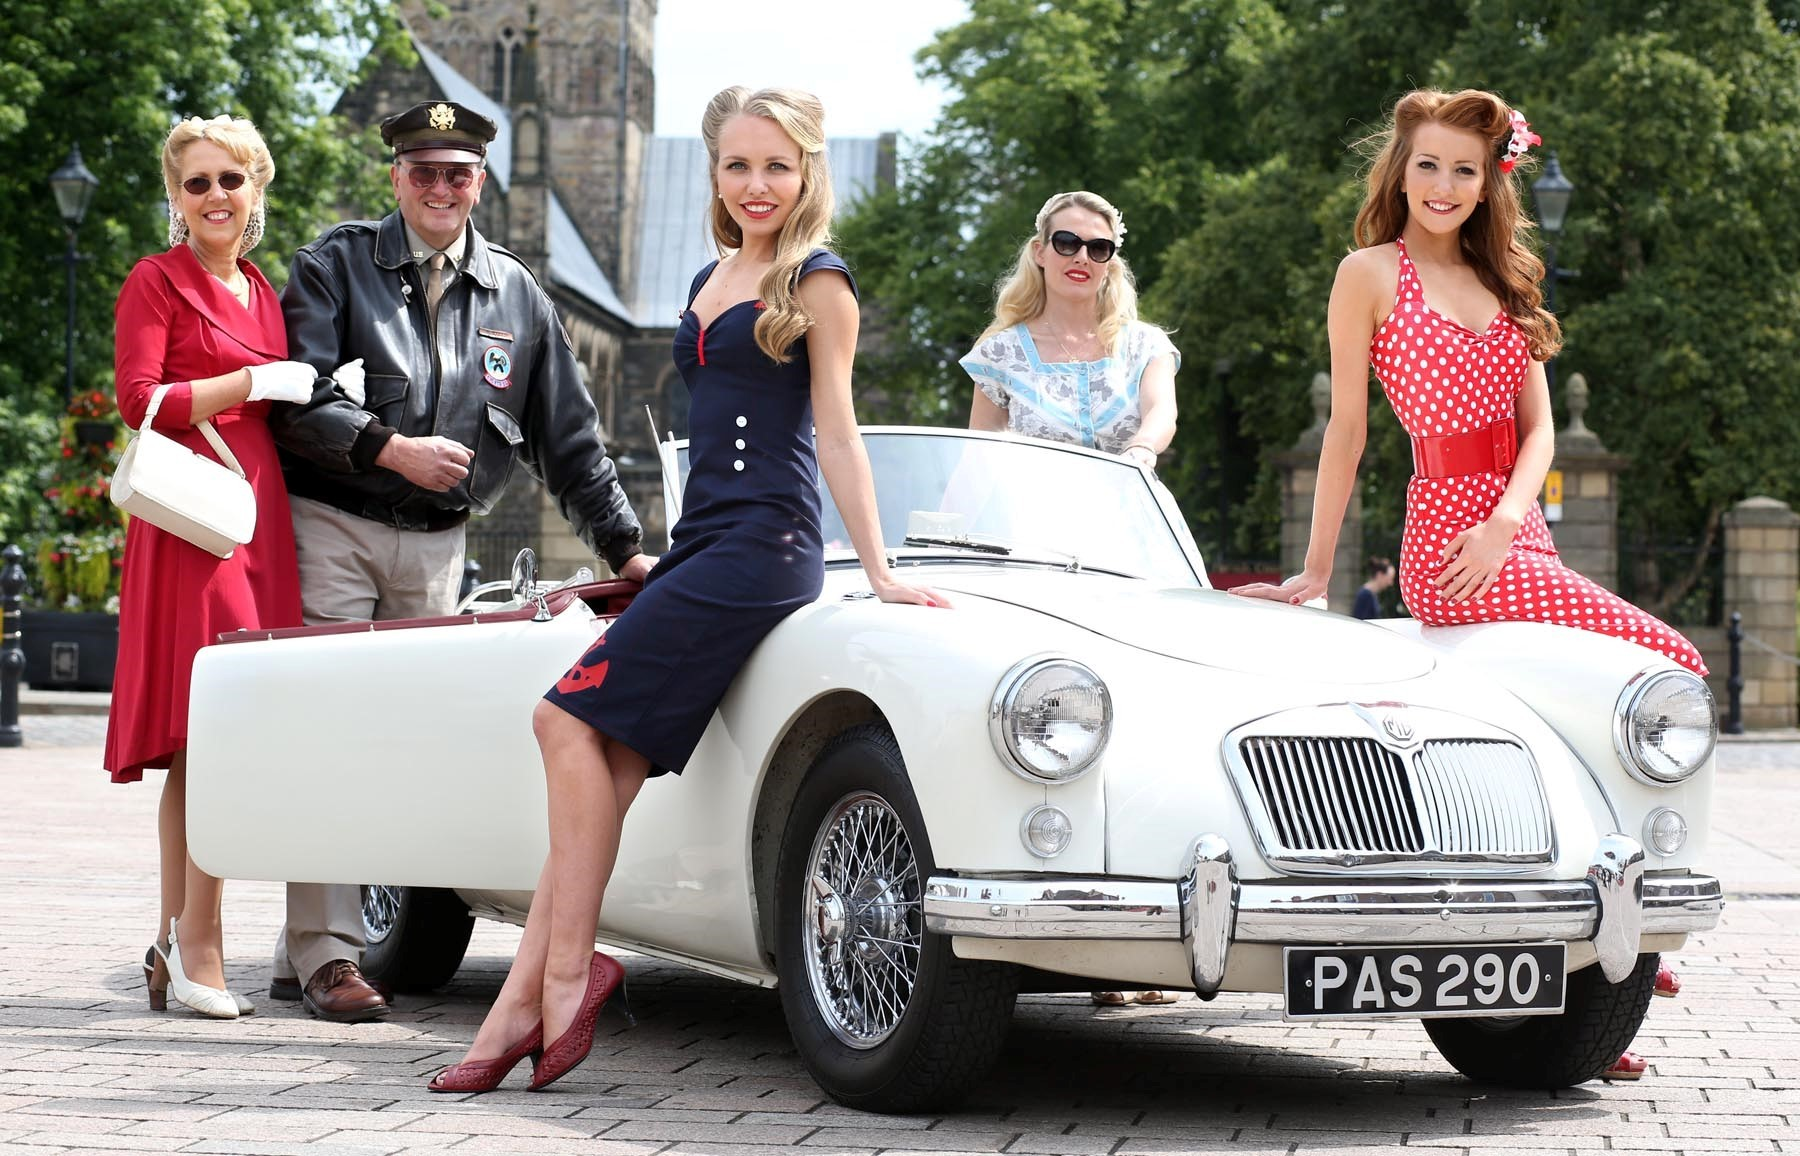 Vintage style heads to Darlington to promote Croft Nostalgia weekend